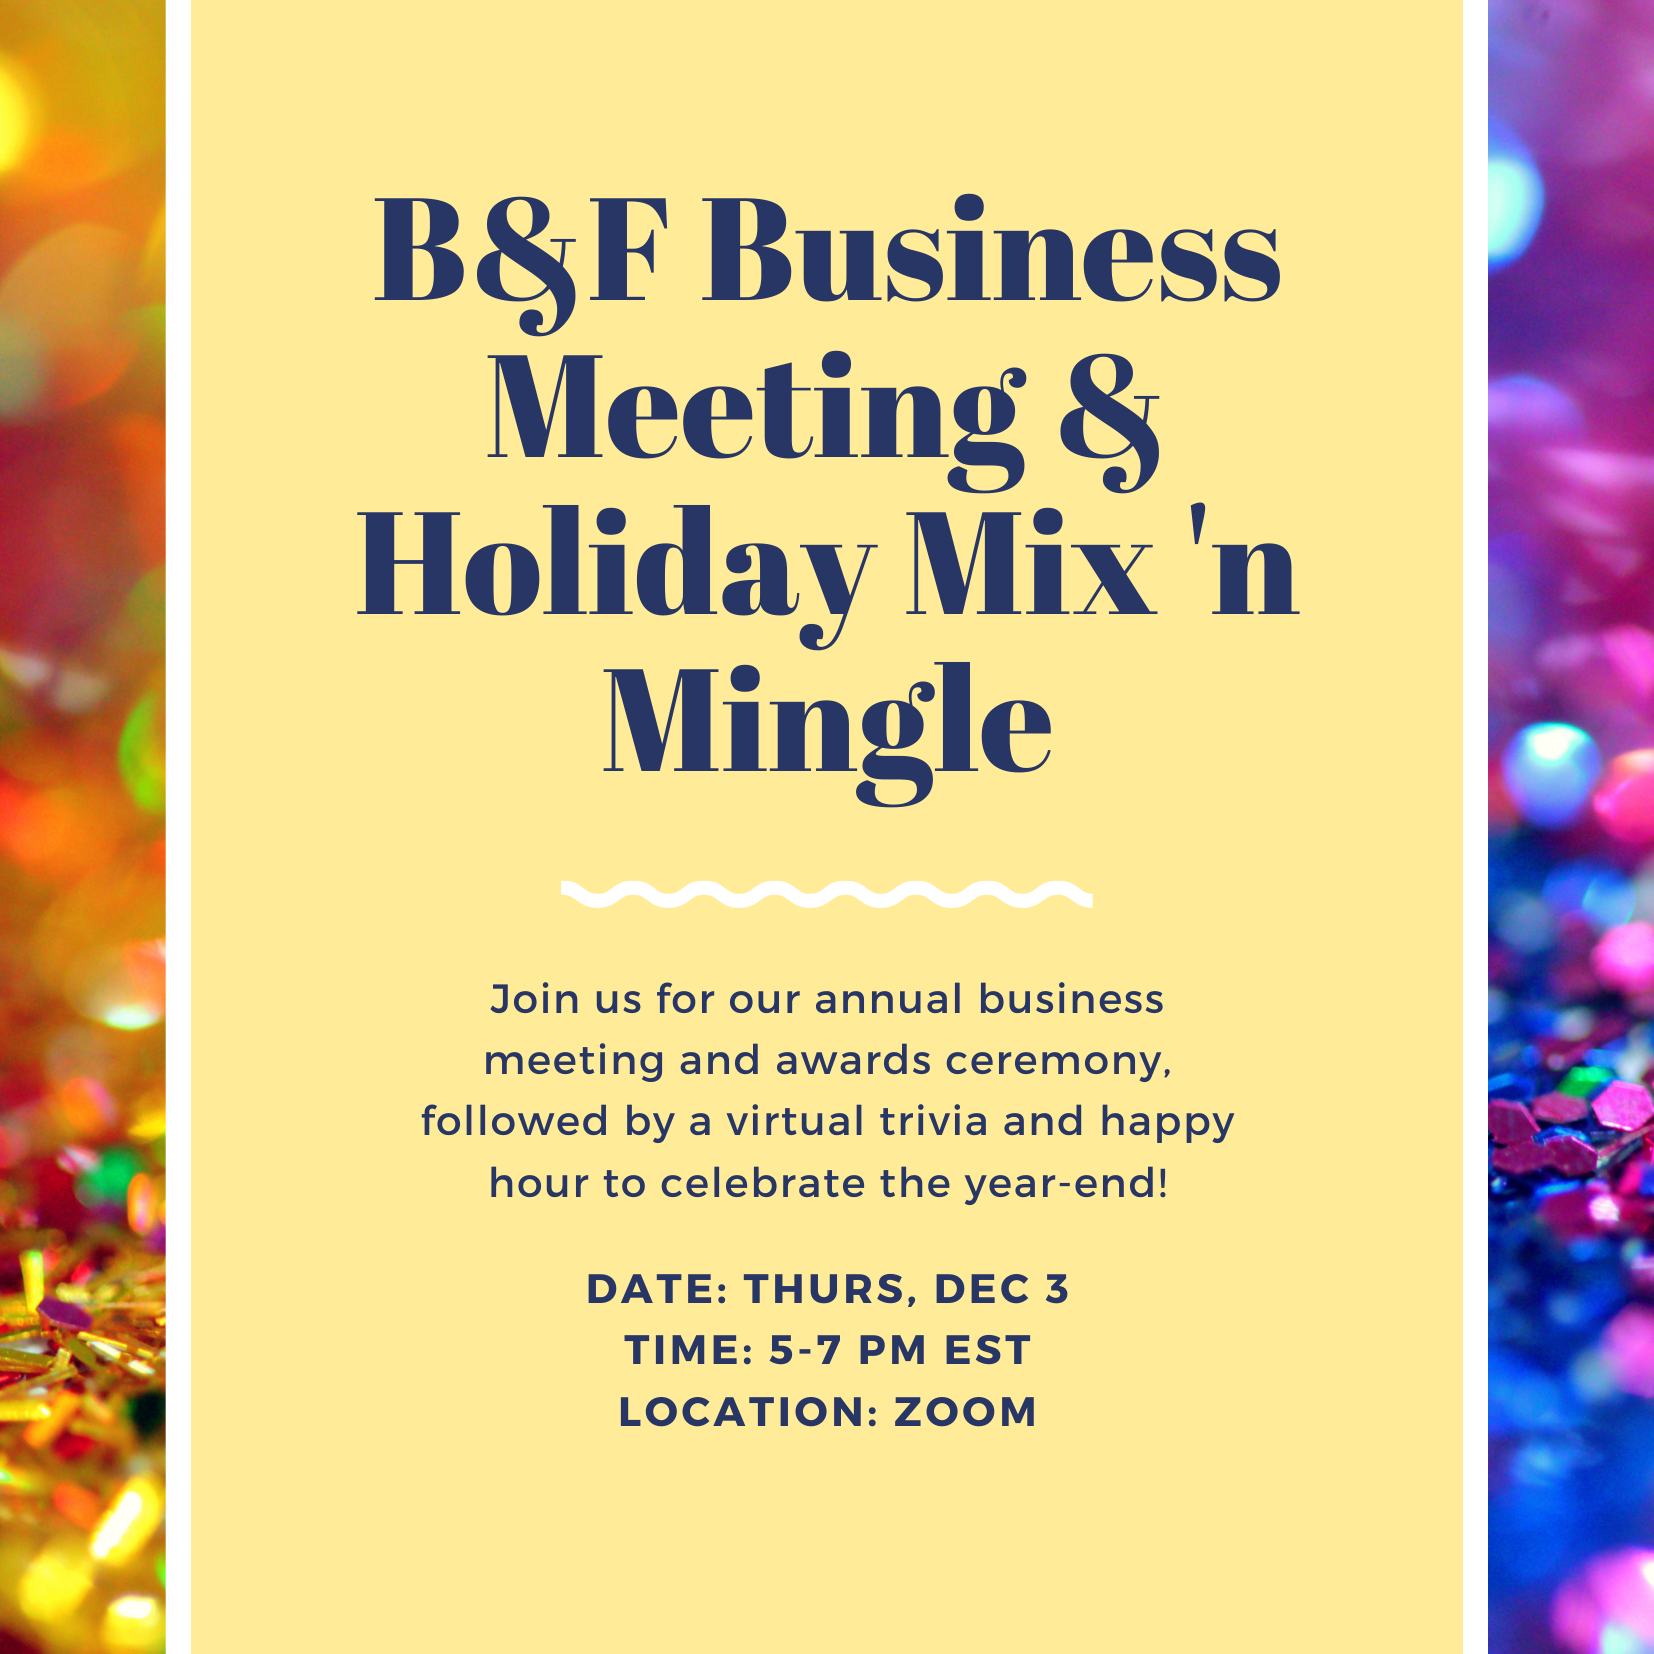 Join us for our annual business meeting and awards ceremony, followed by a virtual trivia and happy hour to celebrate the year-end! Date: Thurs, Dec 3 Time: 5-7 pm EST Location: Zoom